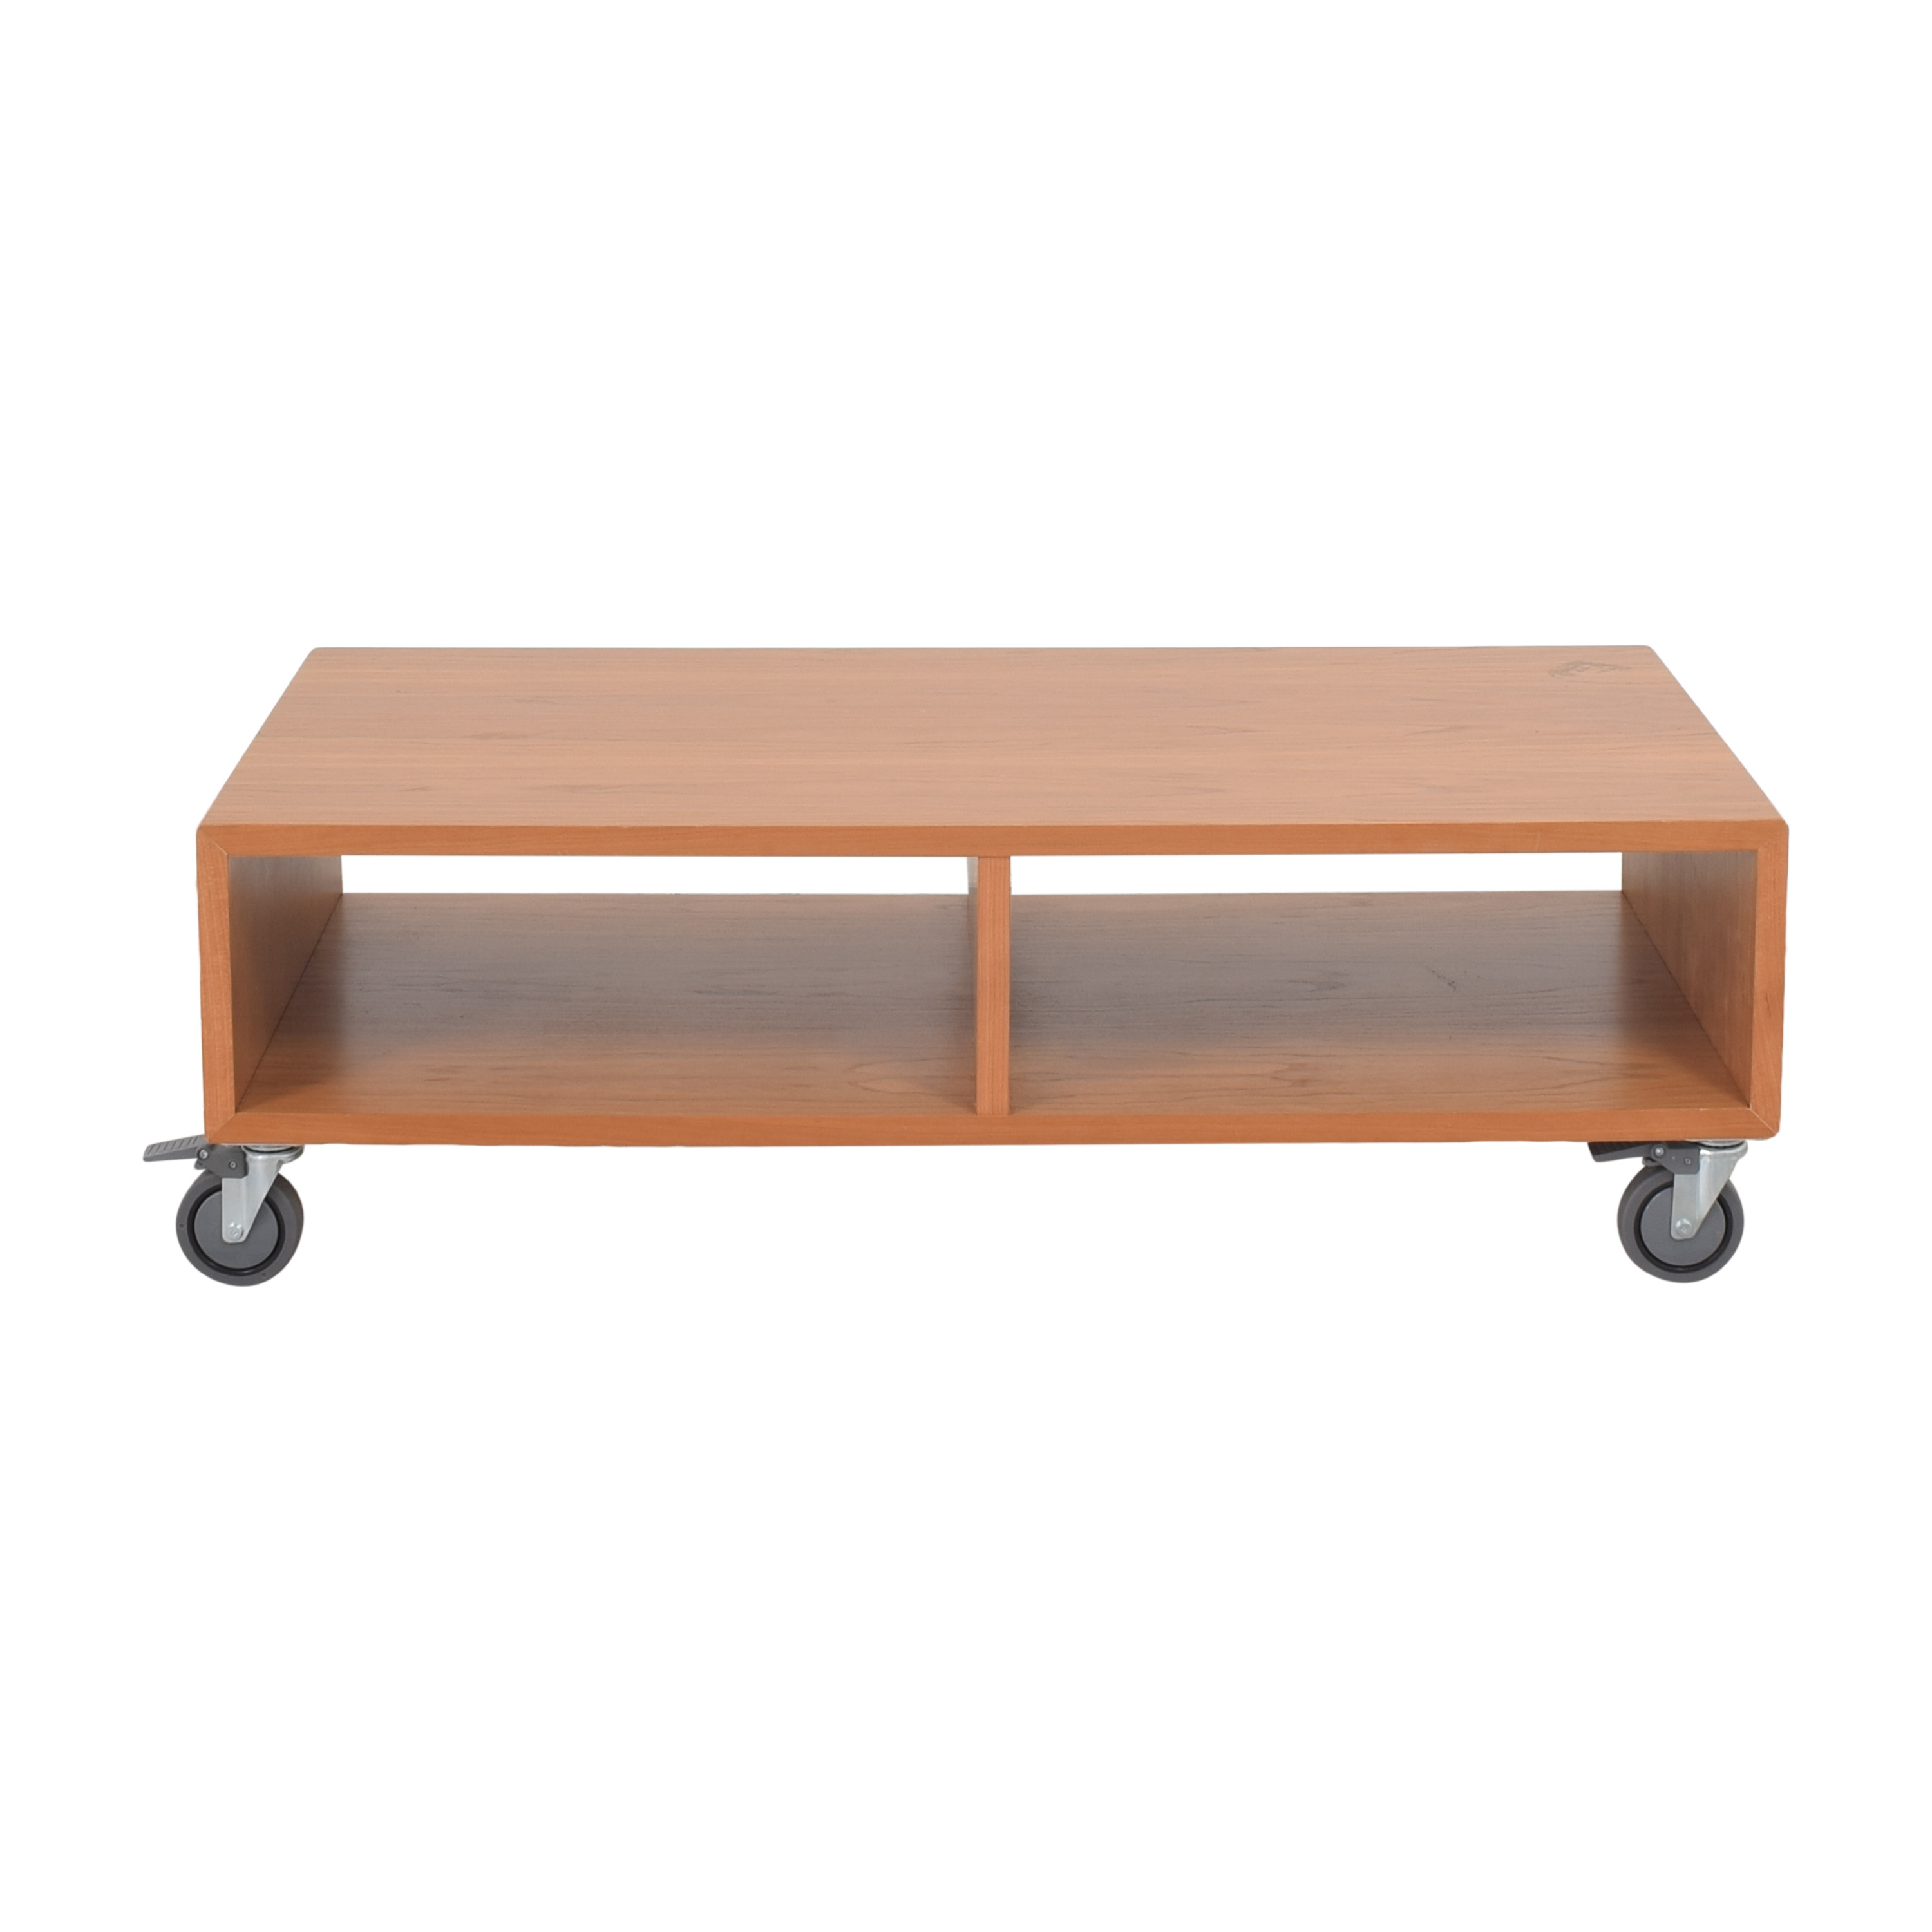 buy Room & Board Room & Board Cocktail Table on Casters online